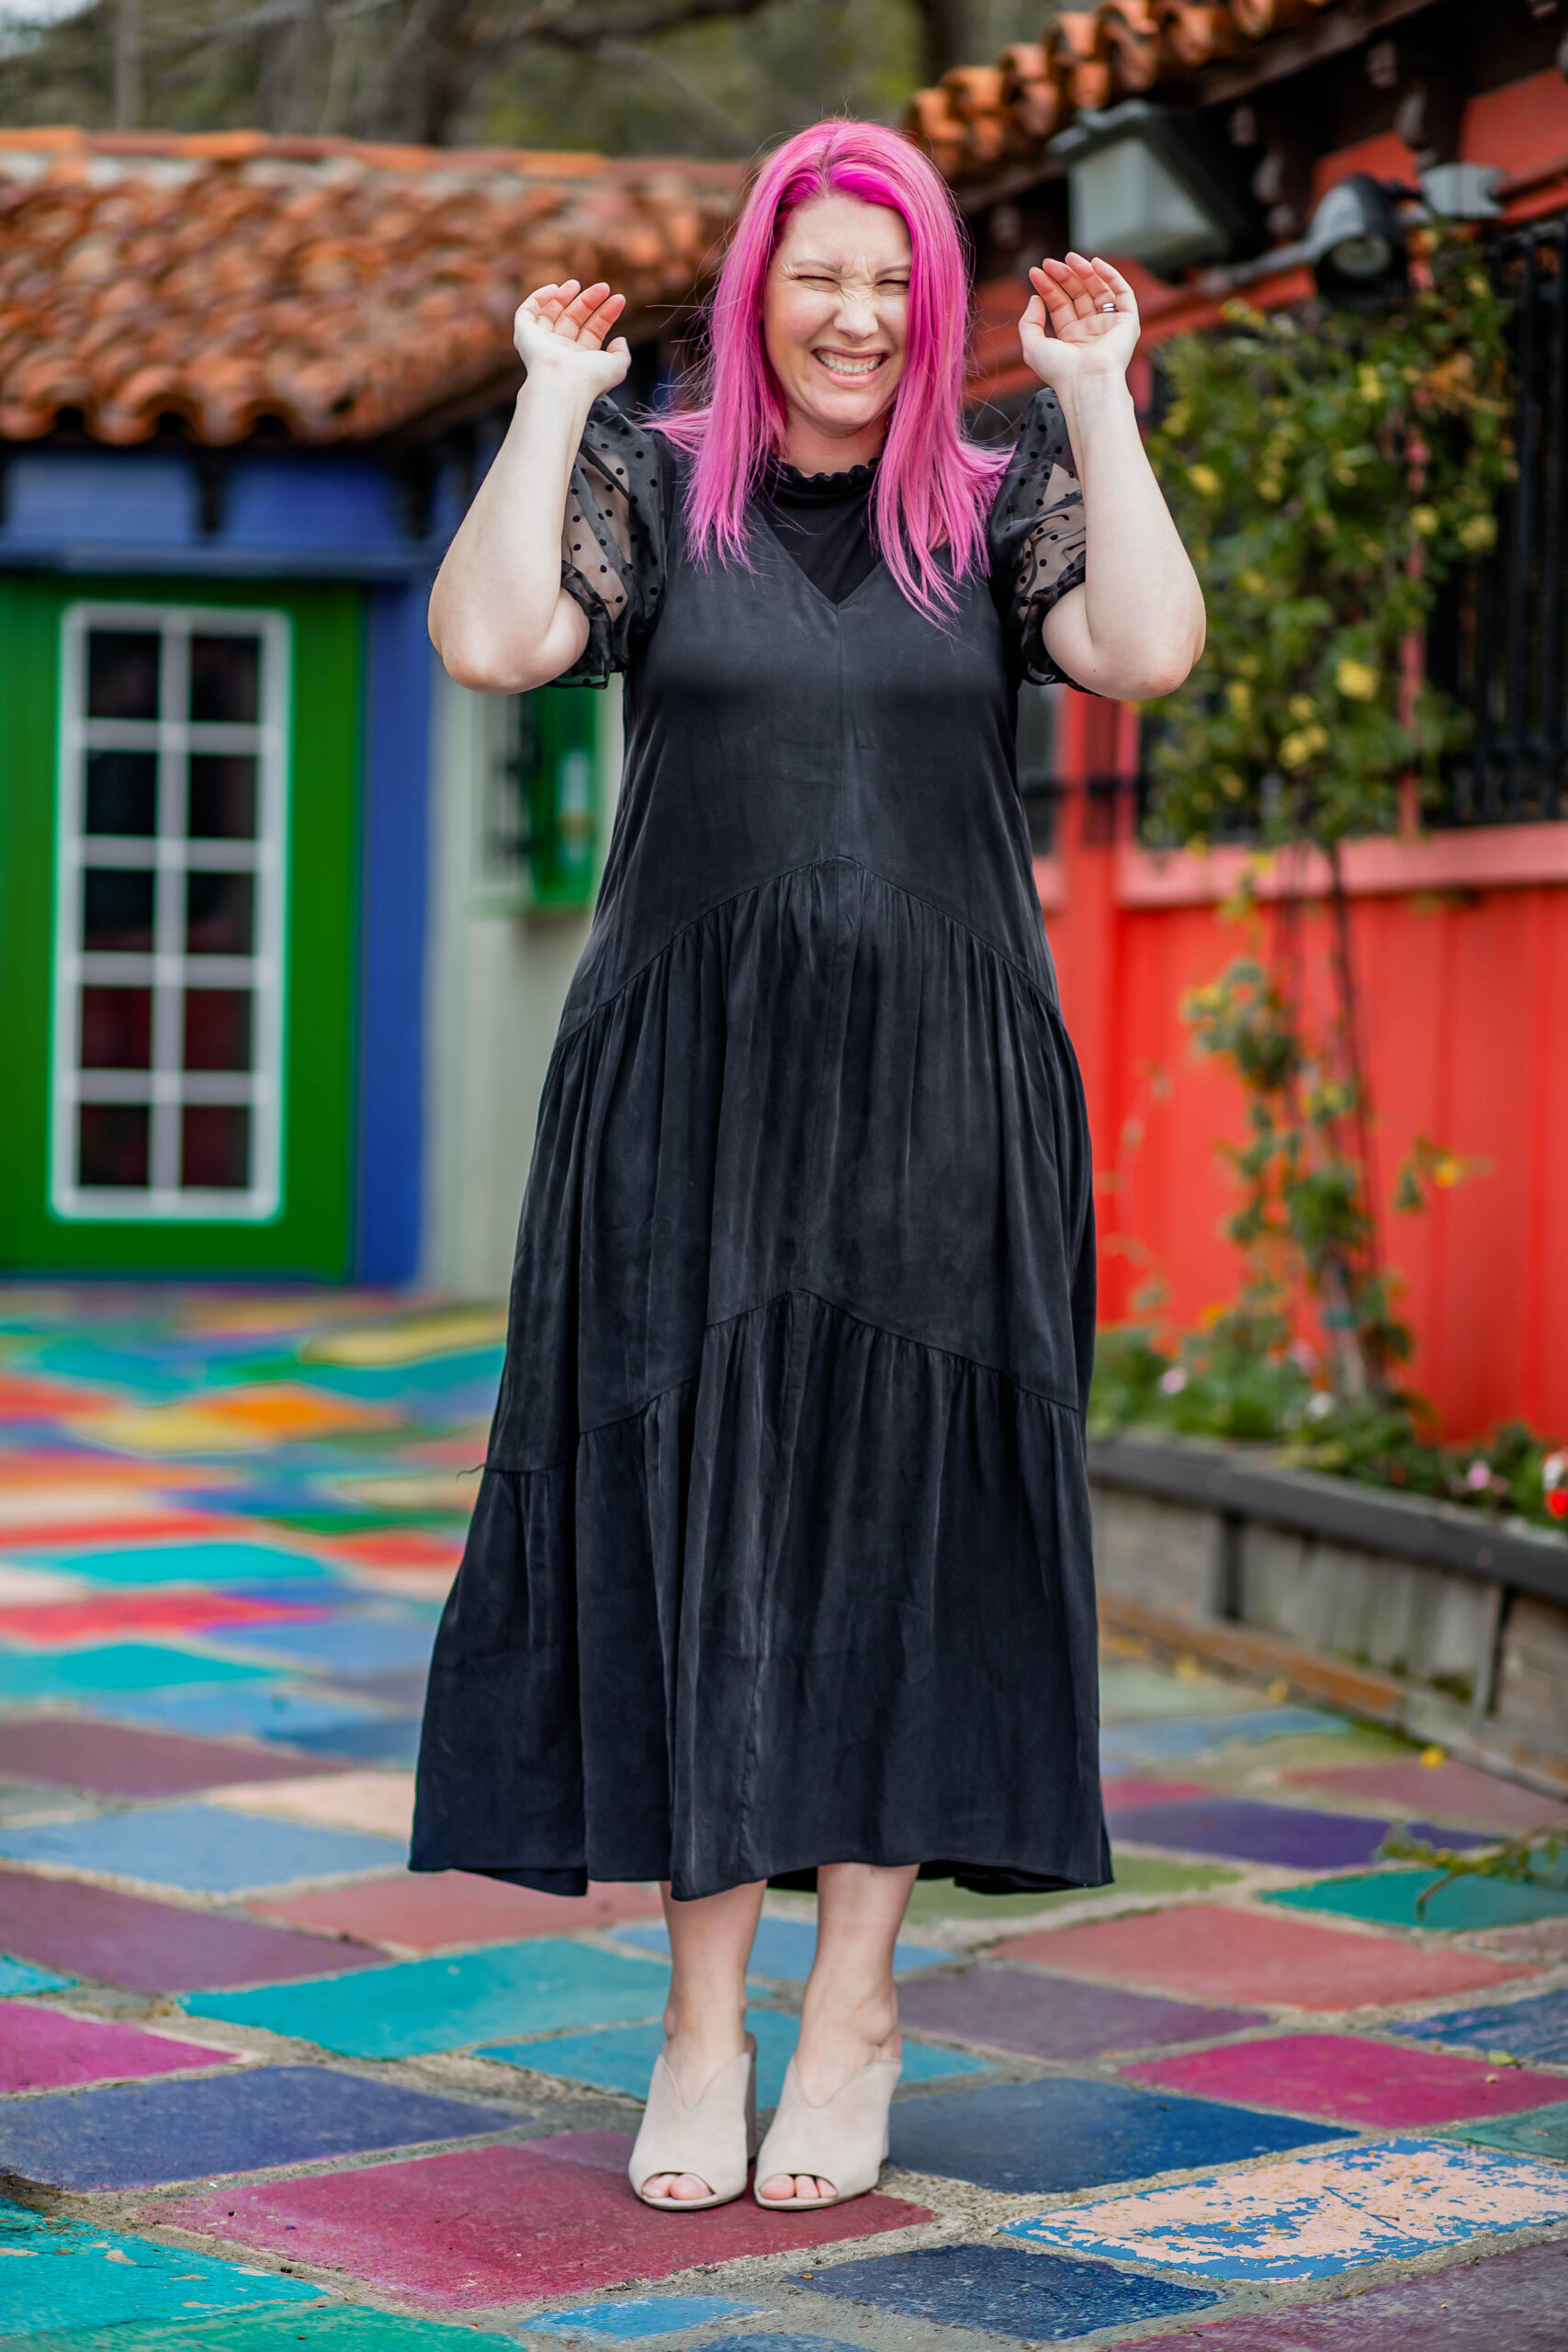 Wondering how to dress up a black maxi dress? This is a great way to take a simple dress from day to night!